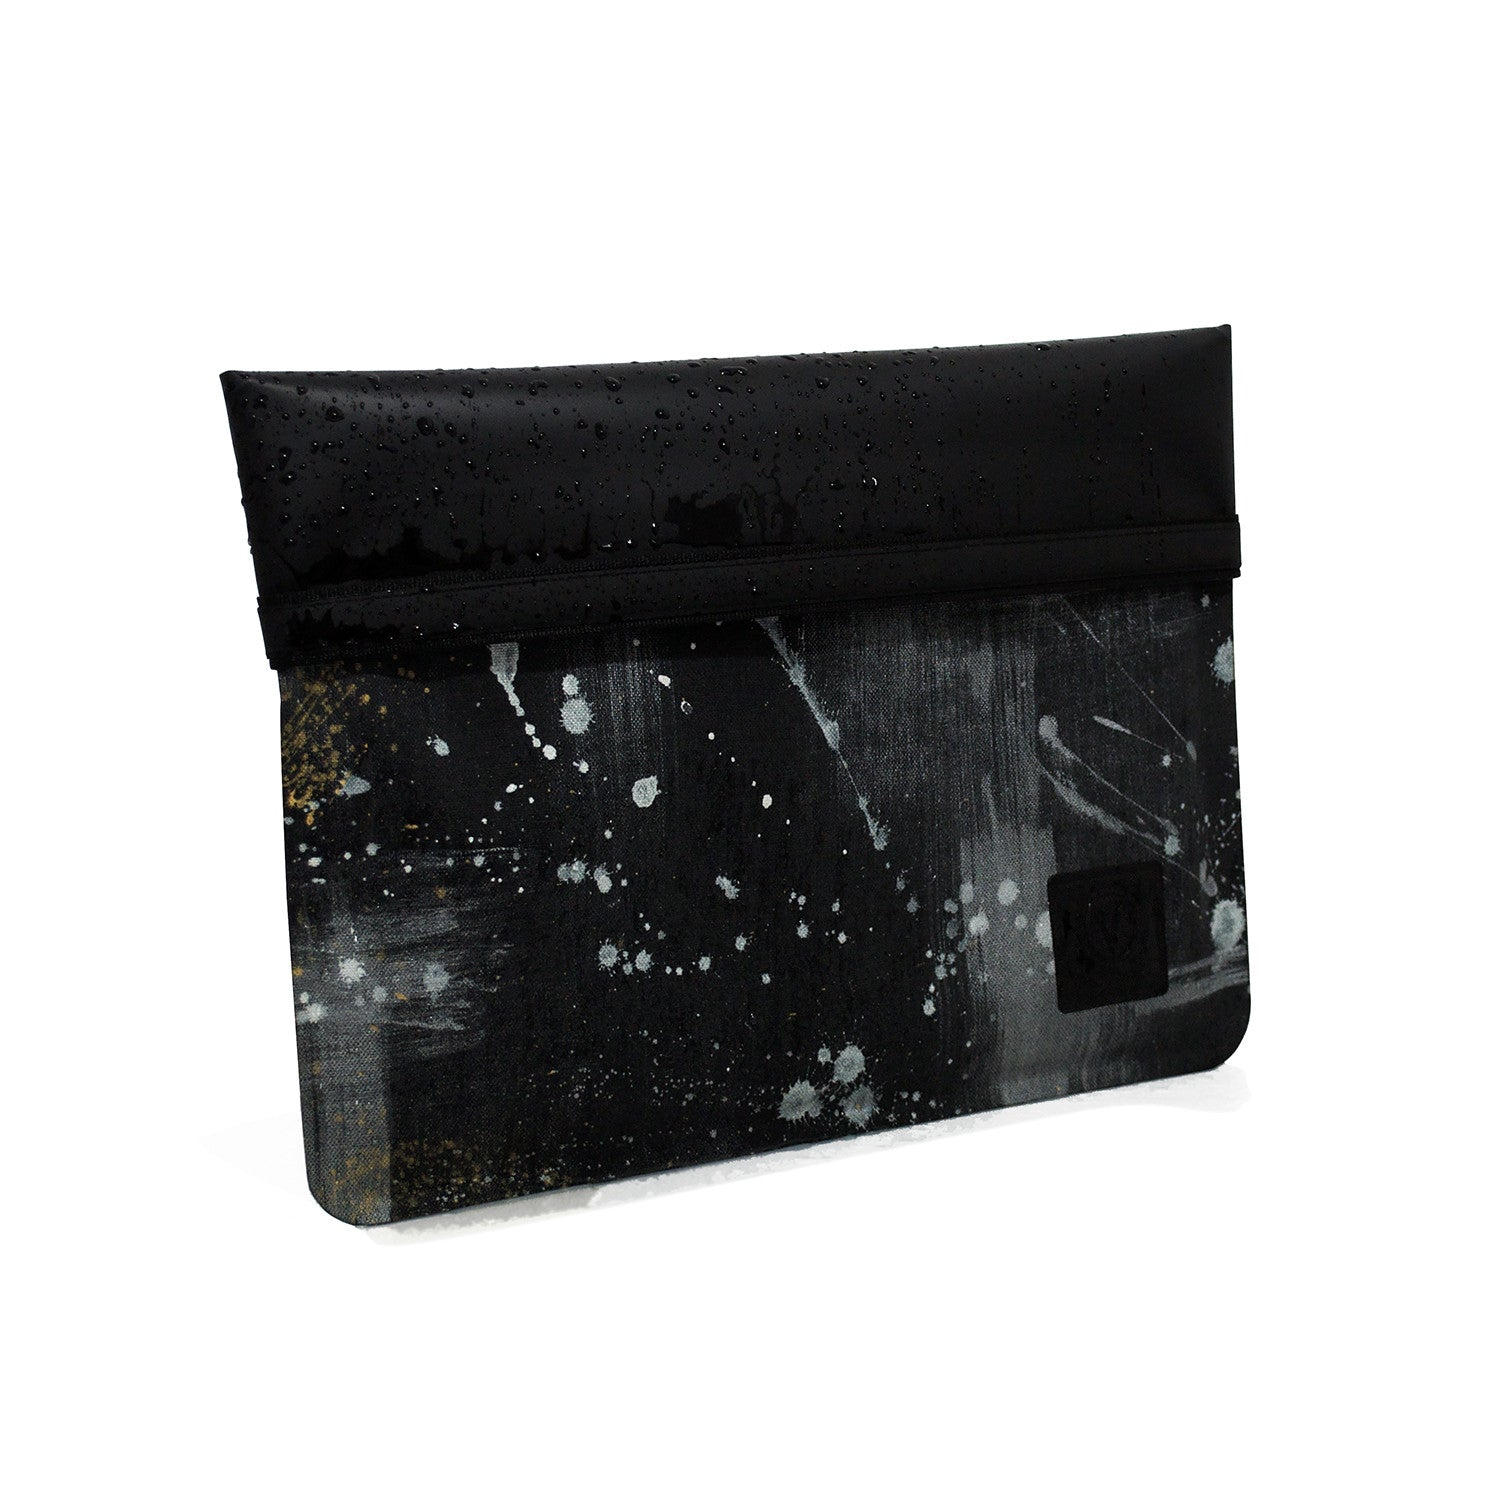 viciousvenom, clutch bag, laptop sleeve, laptop bag, laptop pouch, folio, waterproof bag, dry bag, limited edition, luxury